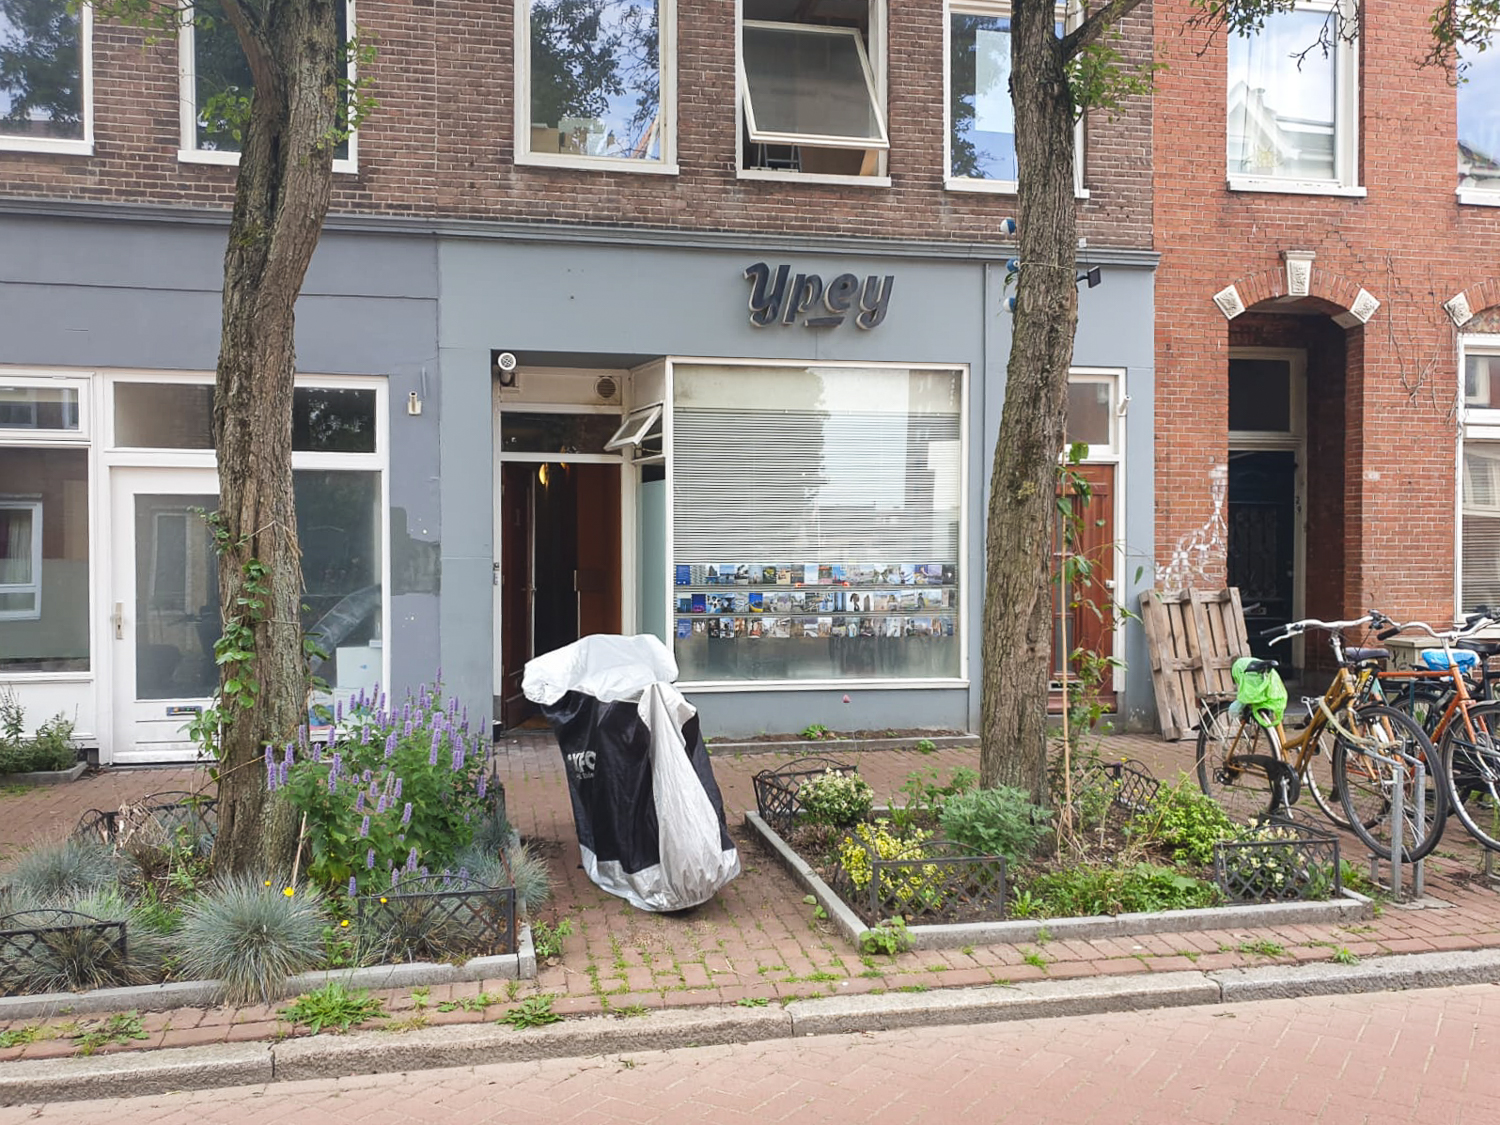 Exhibition of postcards displayed in a large window on a street in Groningen, The Netherlands, with 'a sign reading 'Ypey' above, trees and plants in the pathway in front.